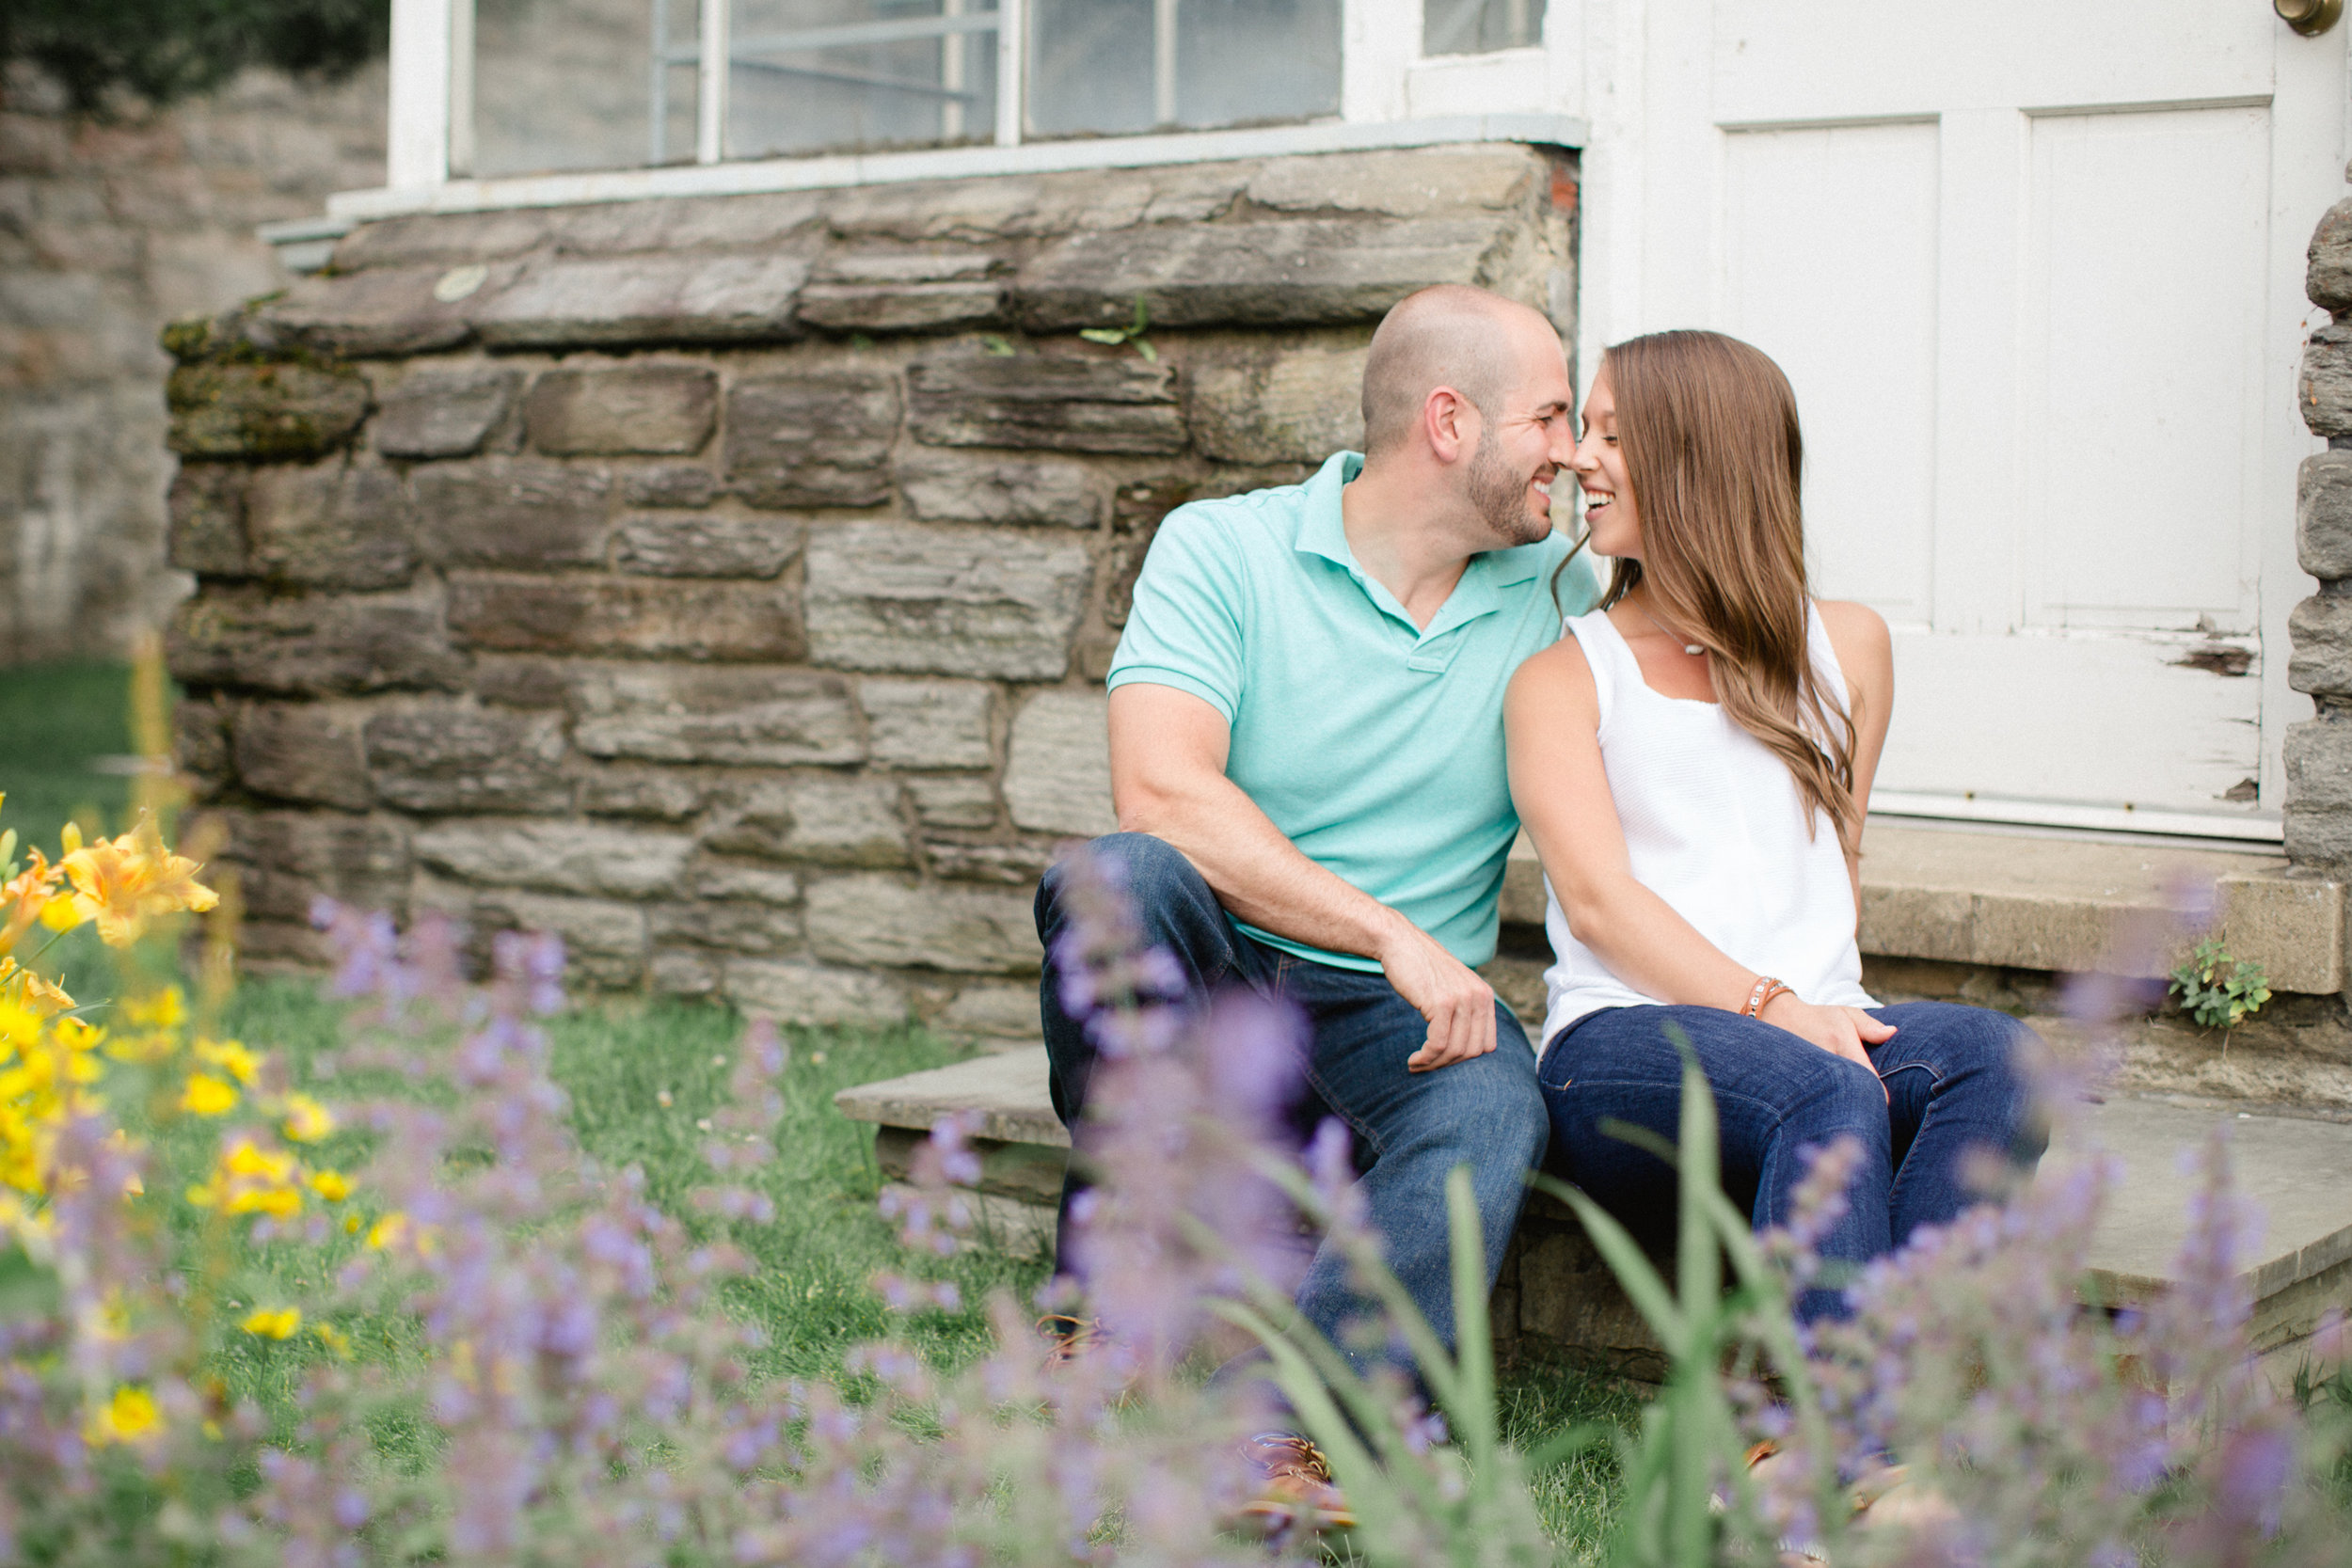 University of Scranton Engagement Session Photos_JDP-5.jpg